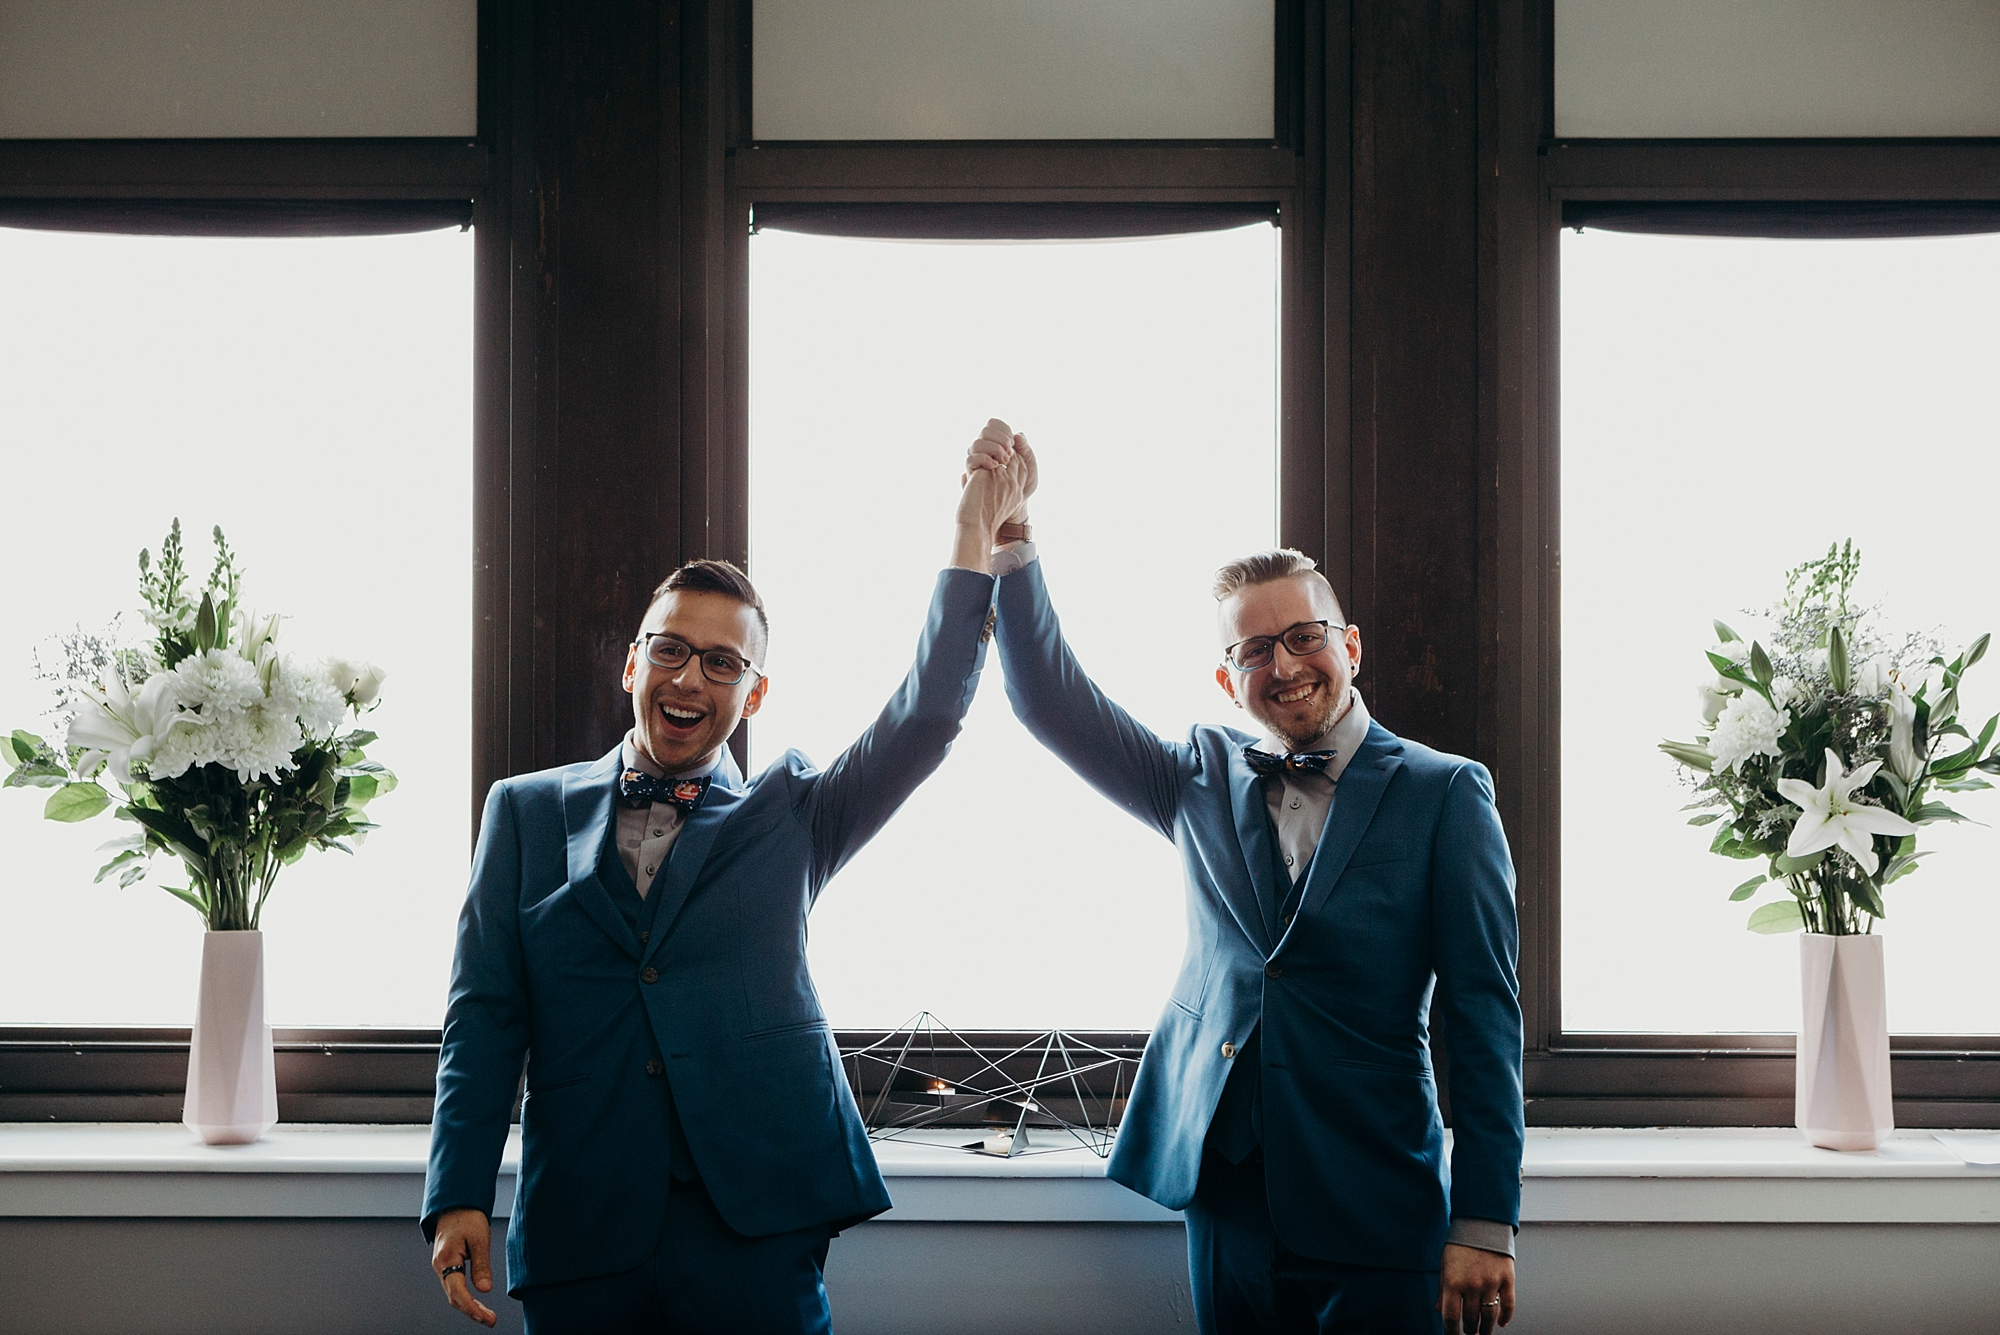 Joe_Mac_Creative_Philadelphia_Philly_LGBT_Gay_Engagement_Wedding_Photography__0077.jpg